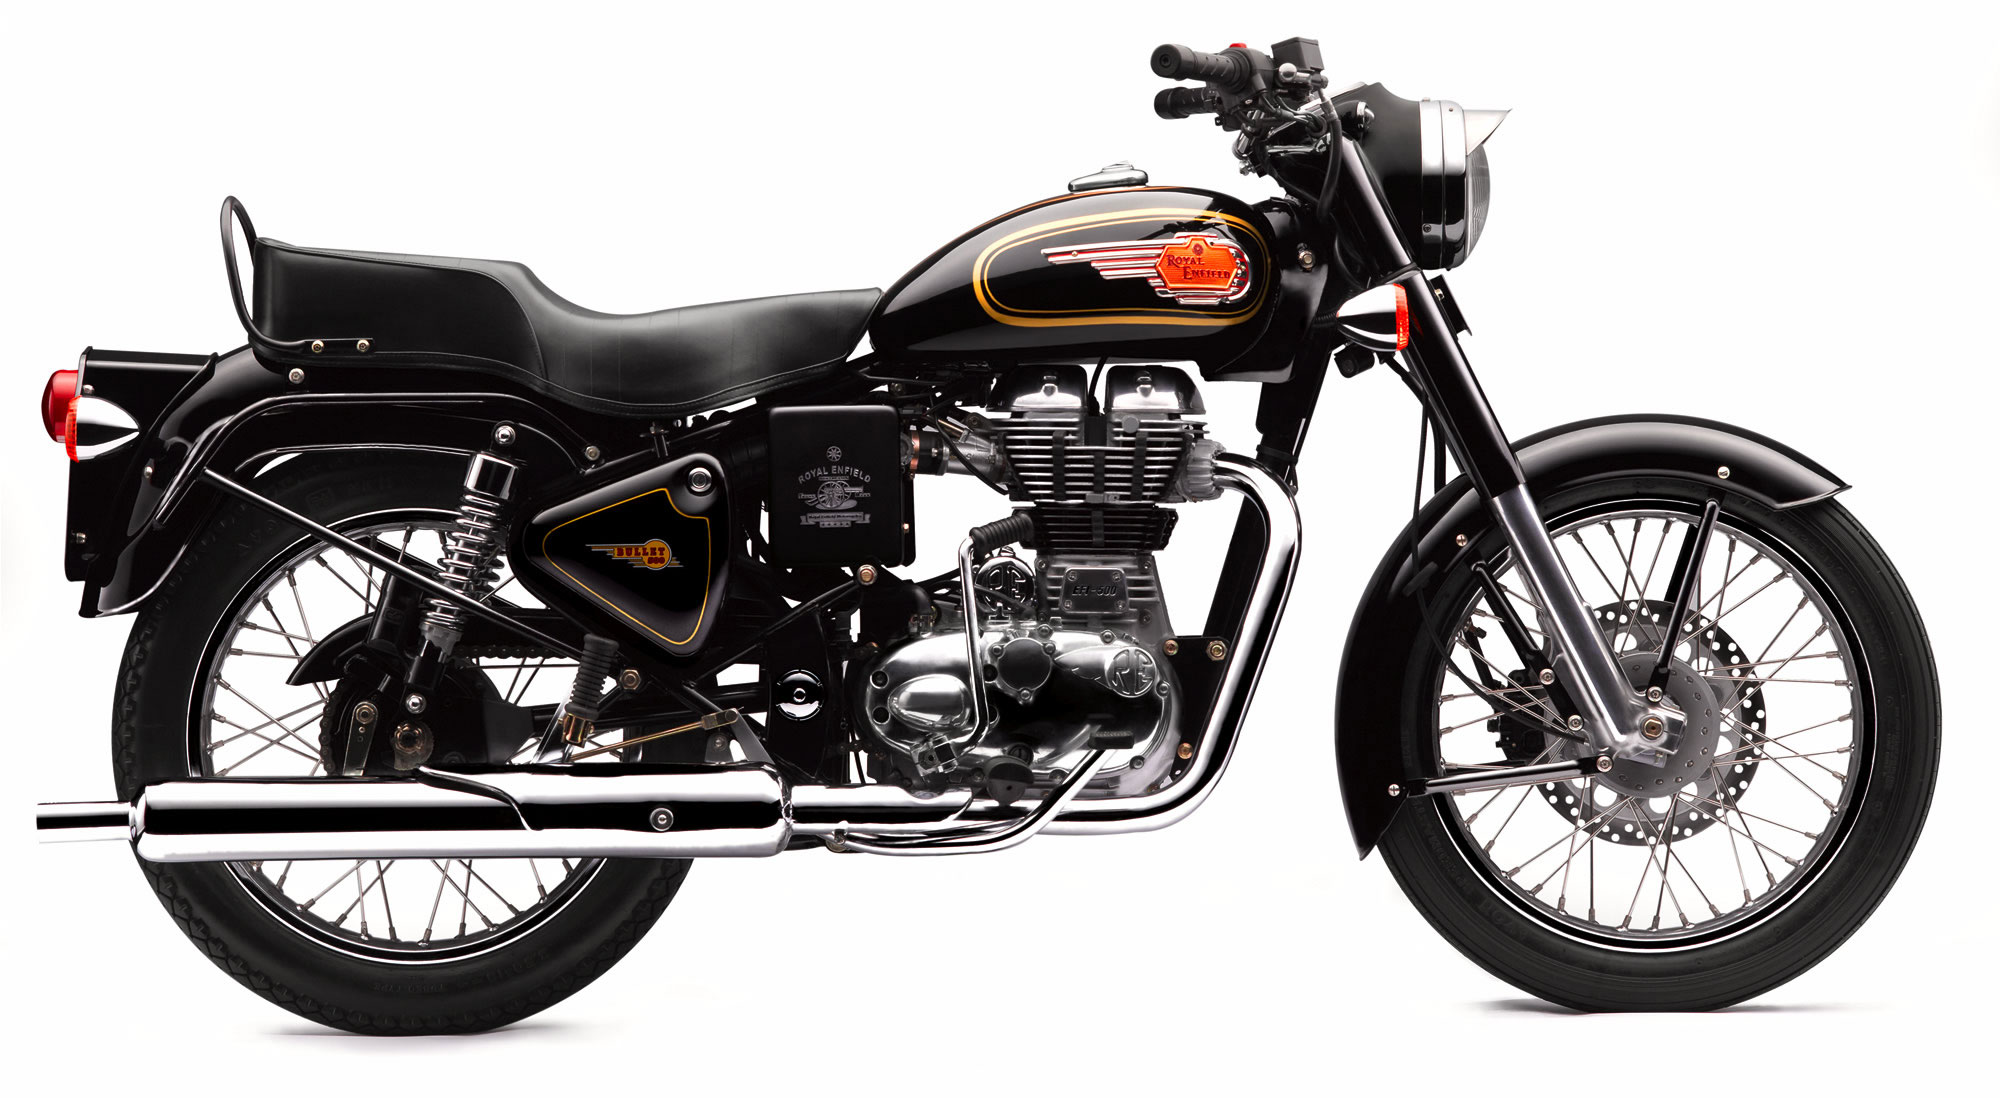 Royal Enfield Bullet 350 Classic 2008 images #123483